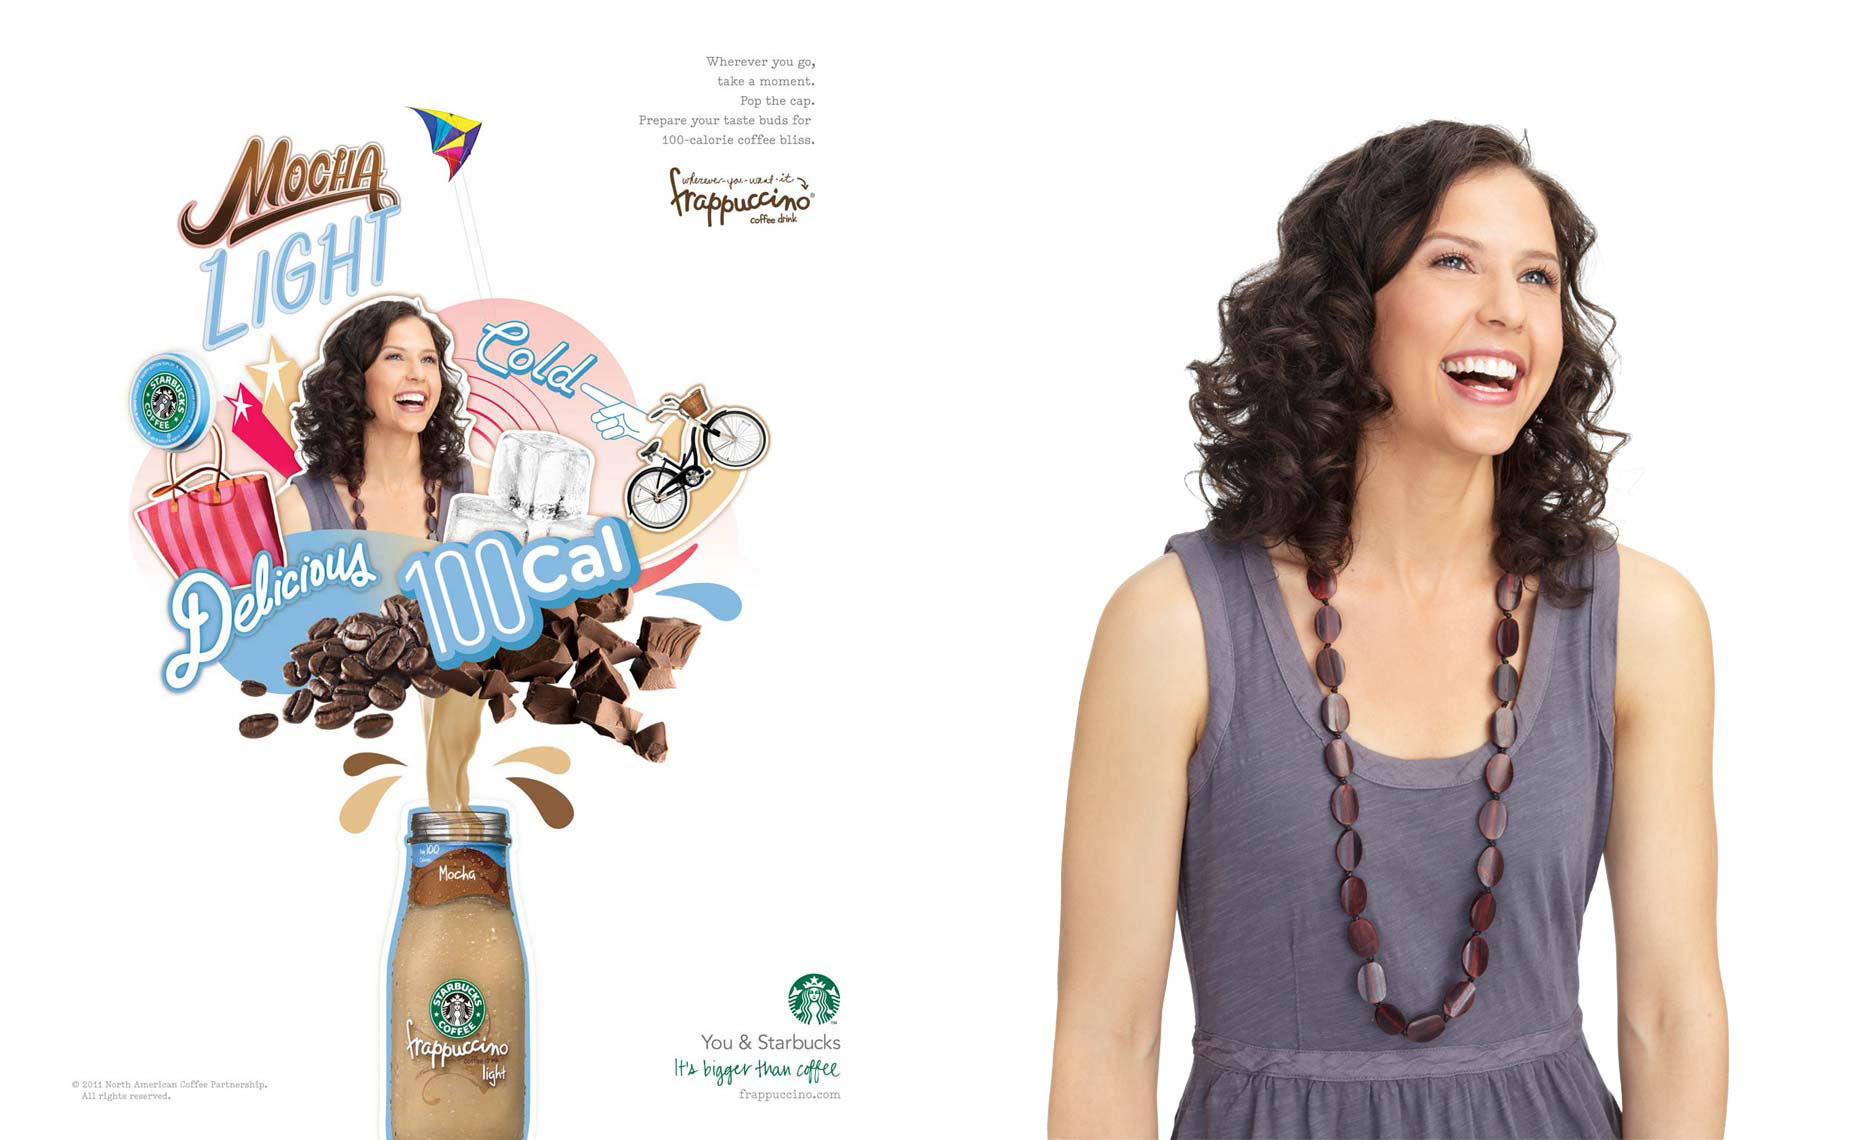 ADVERTISING_020Mocha_light_WEB